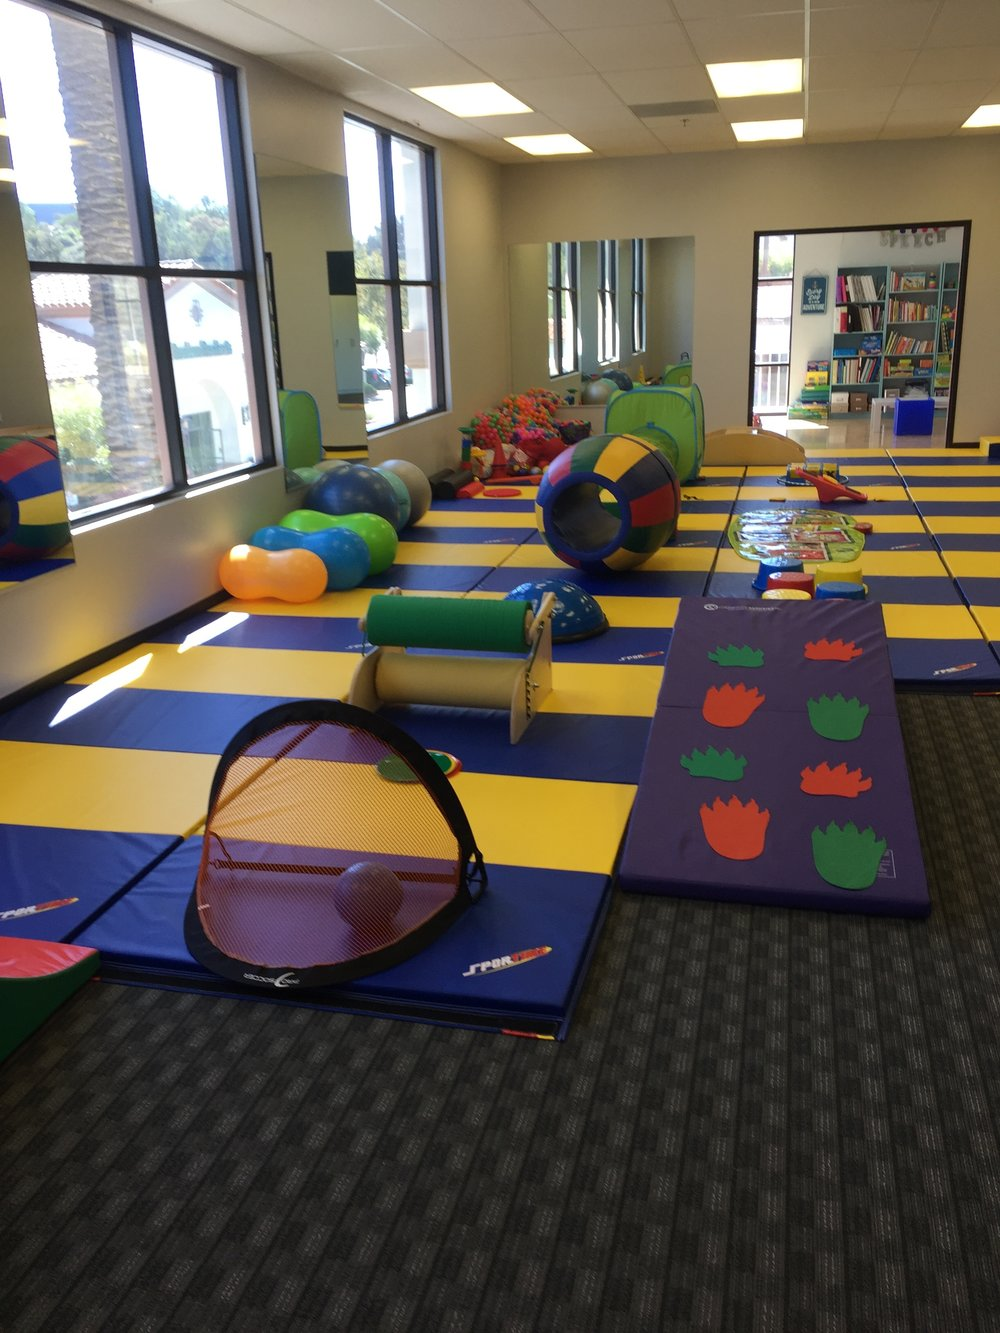 Equipment pediatric physical therapy - Therapy Gym Jpg